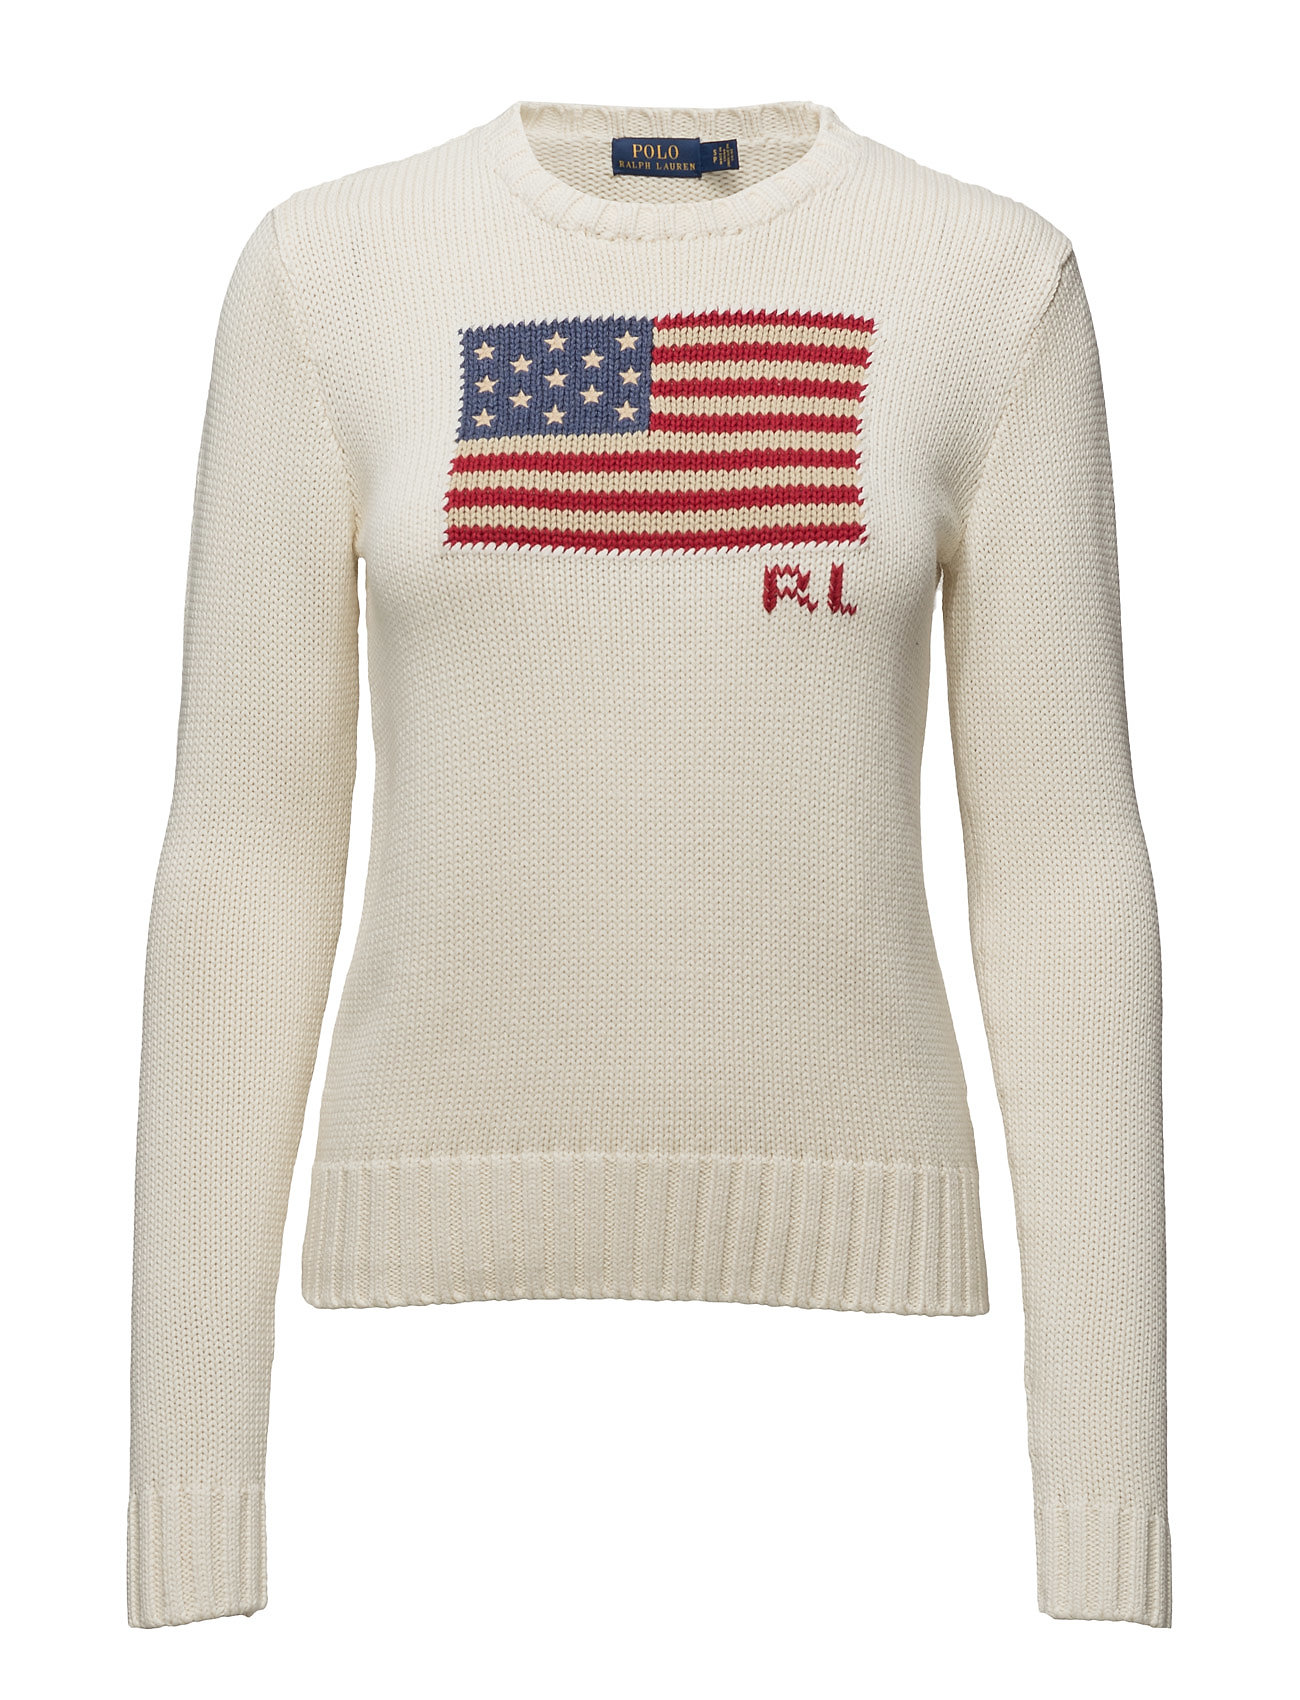 c077163eb26 Flag Cotton Crewneck Sweater (Cream Multi) (£129) - Polo Ralph ...